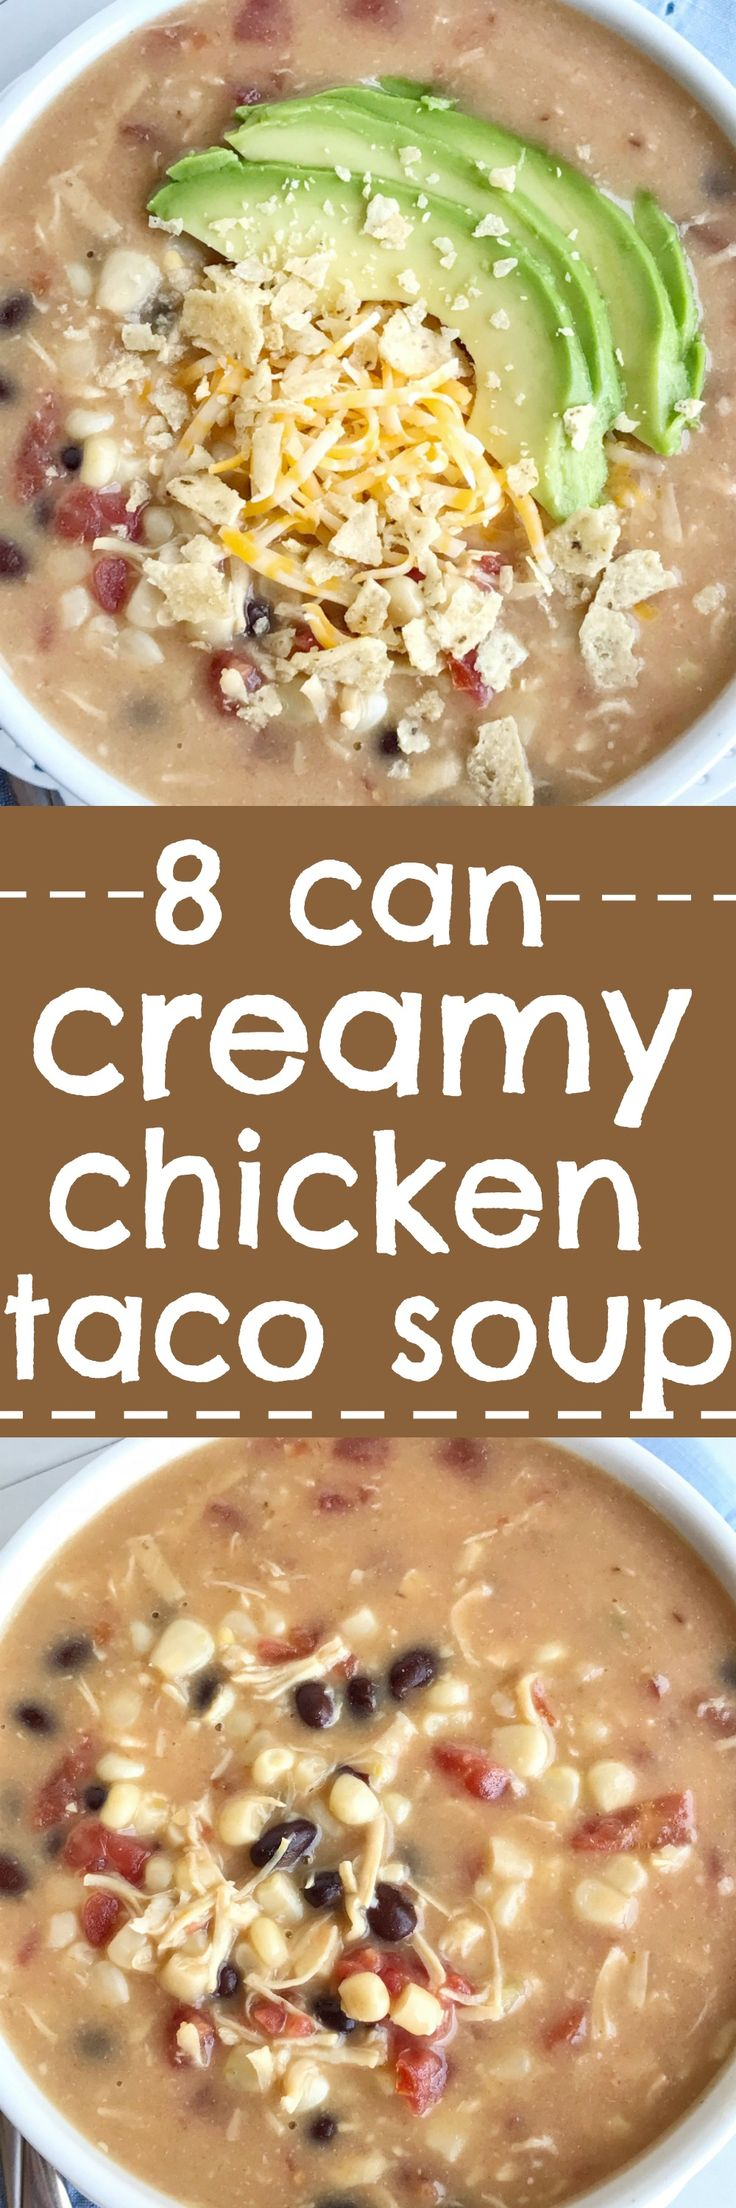 8 can creamy chicken taco soup is a quick dinner recipe that's perfect for those busy back-to-school weeknights. This soup can be on the dinner table in 30 minutes! Shopping at Walmart for great deals on Campbell Soup Company product essentials makes weeknight dinners so much easier | #ad #CampbellsShortcutMeals @Walmart